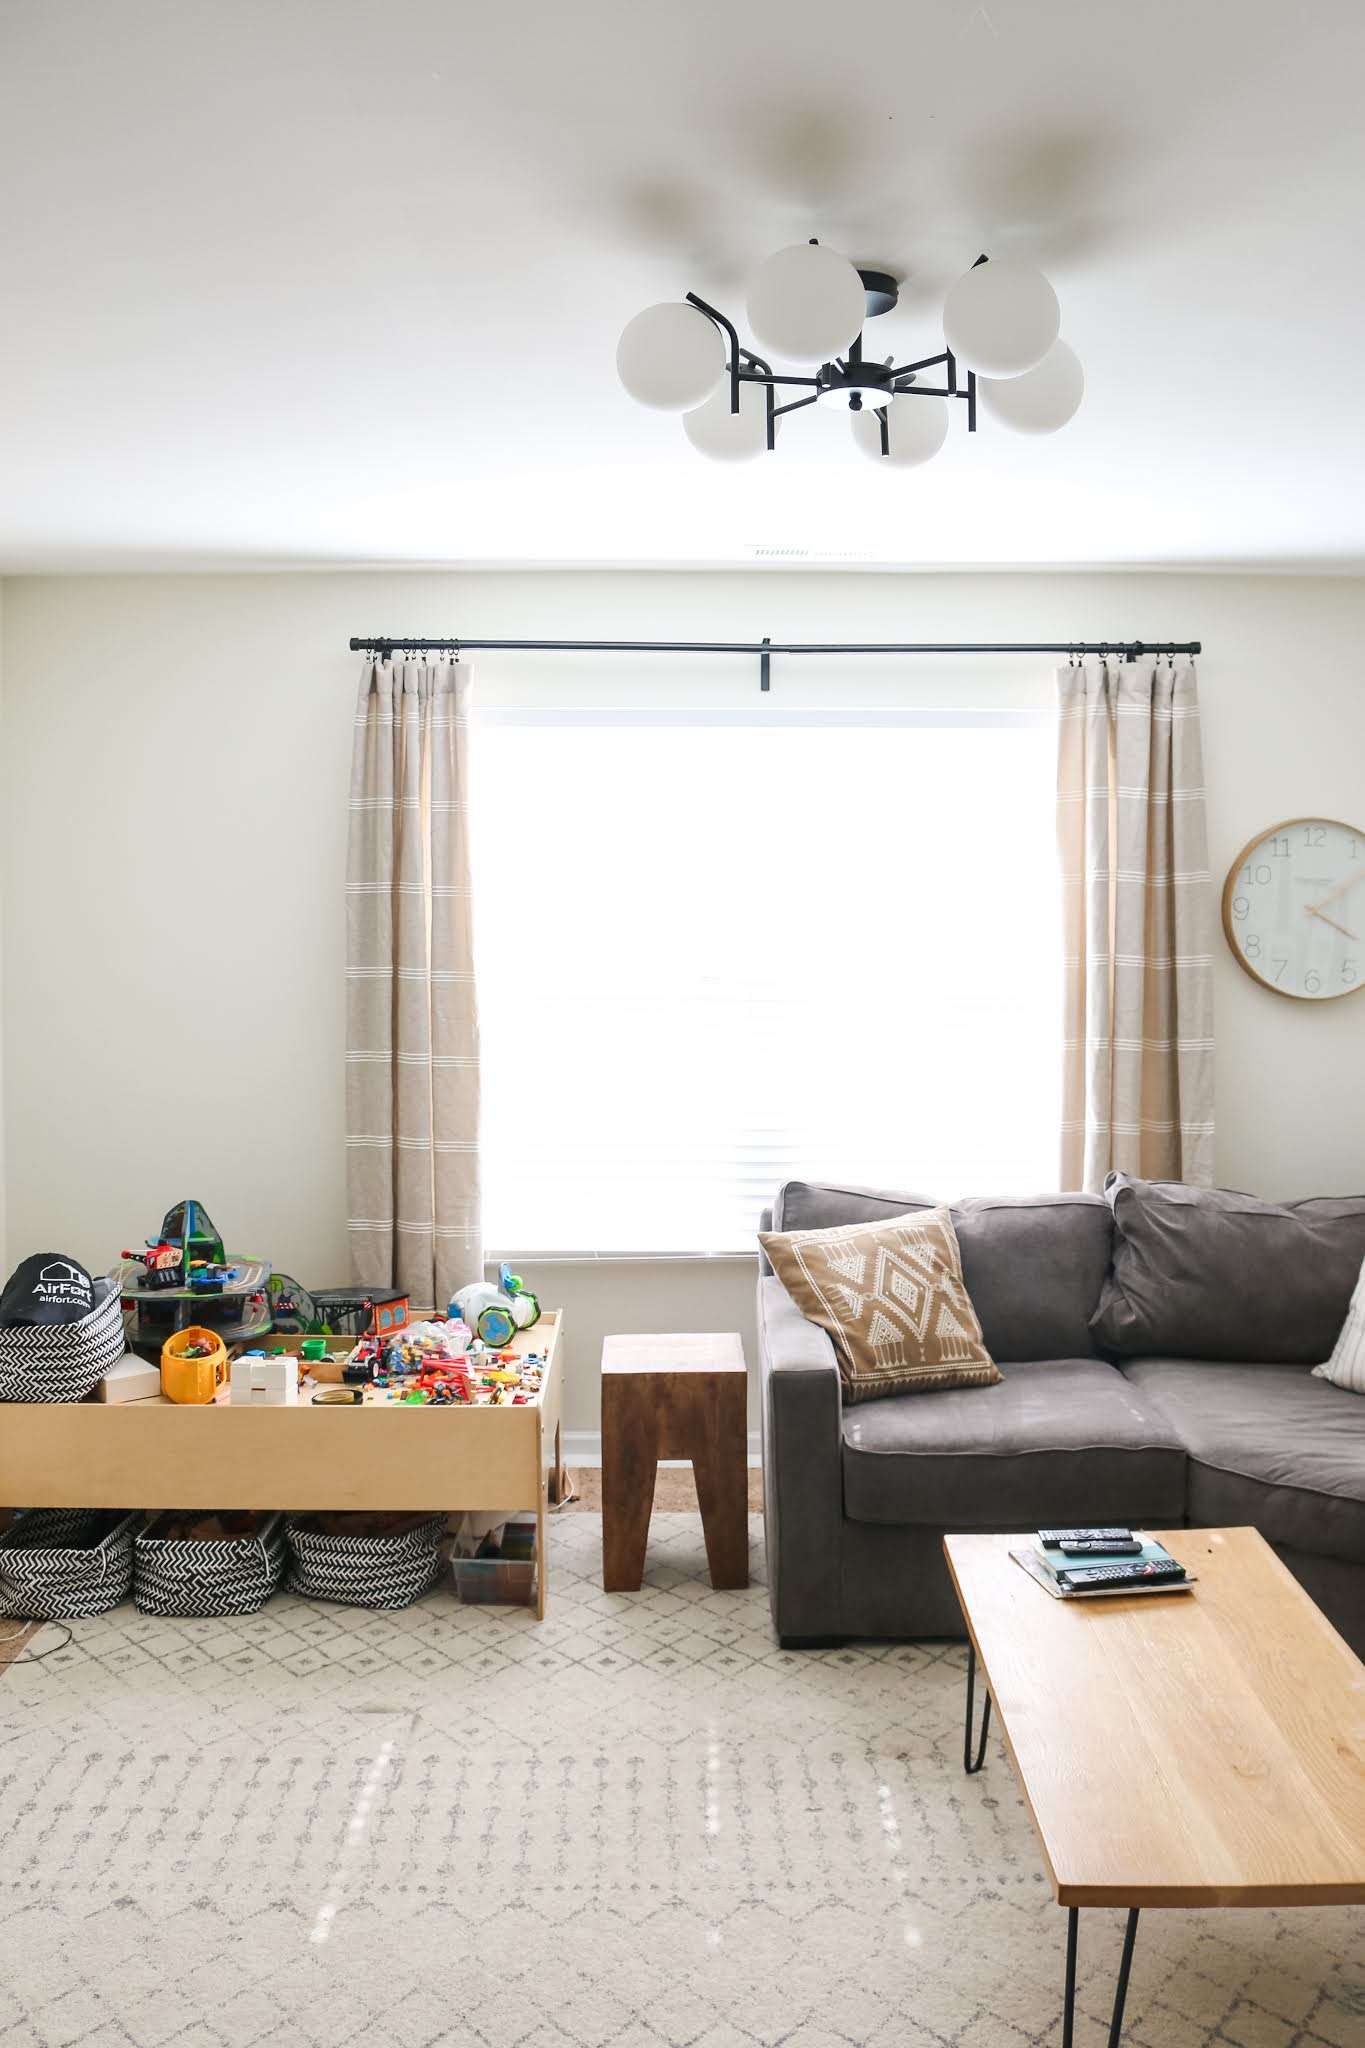 Before and After Family Room Reveal!